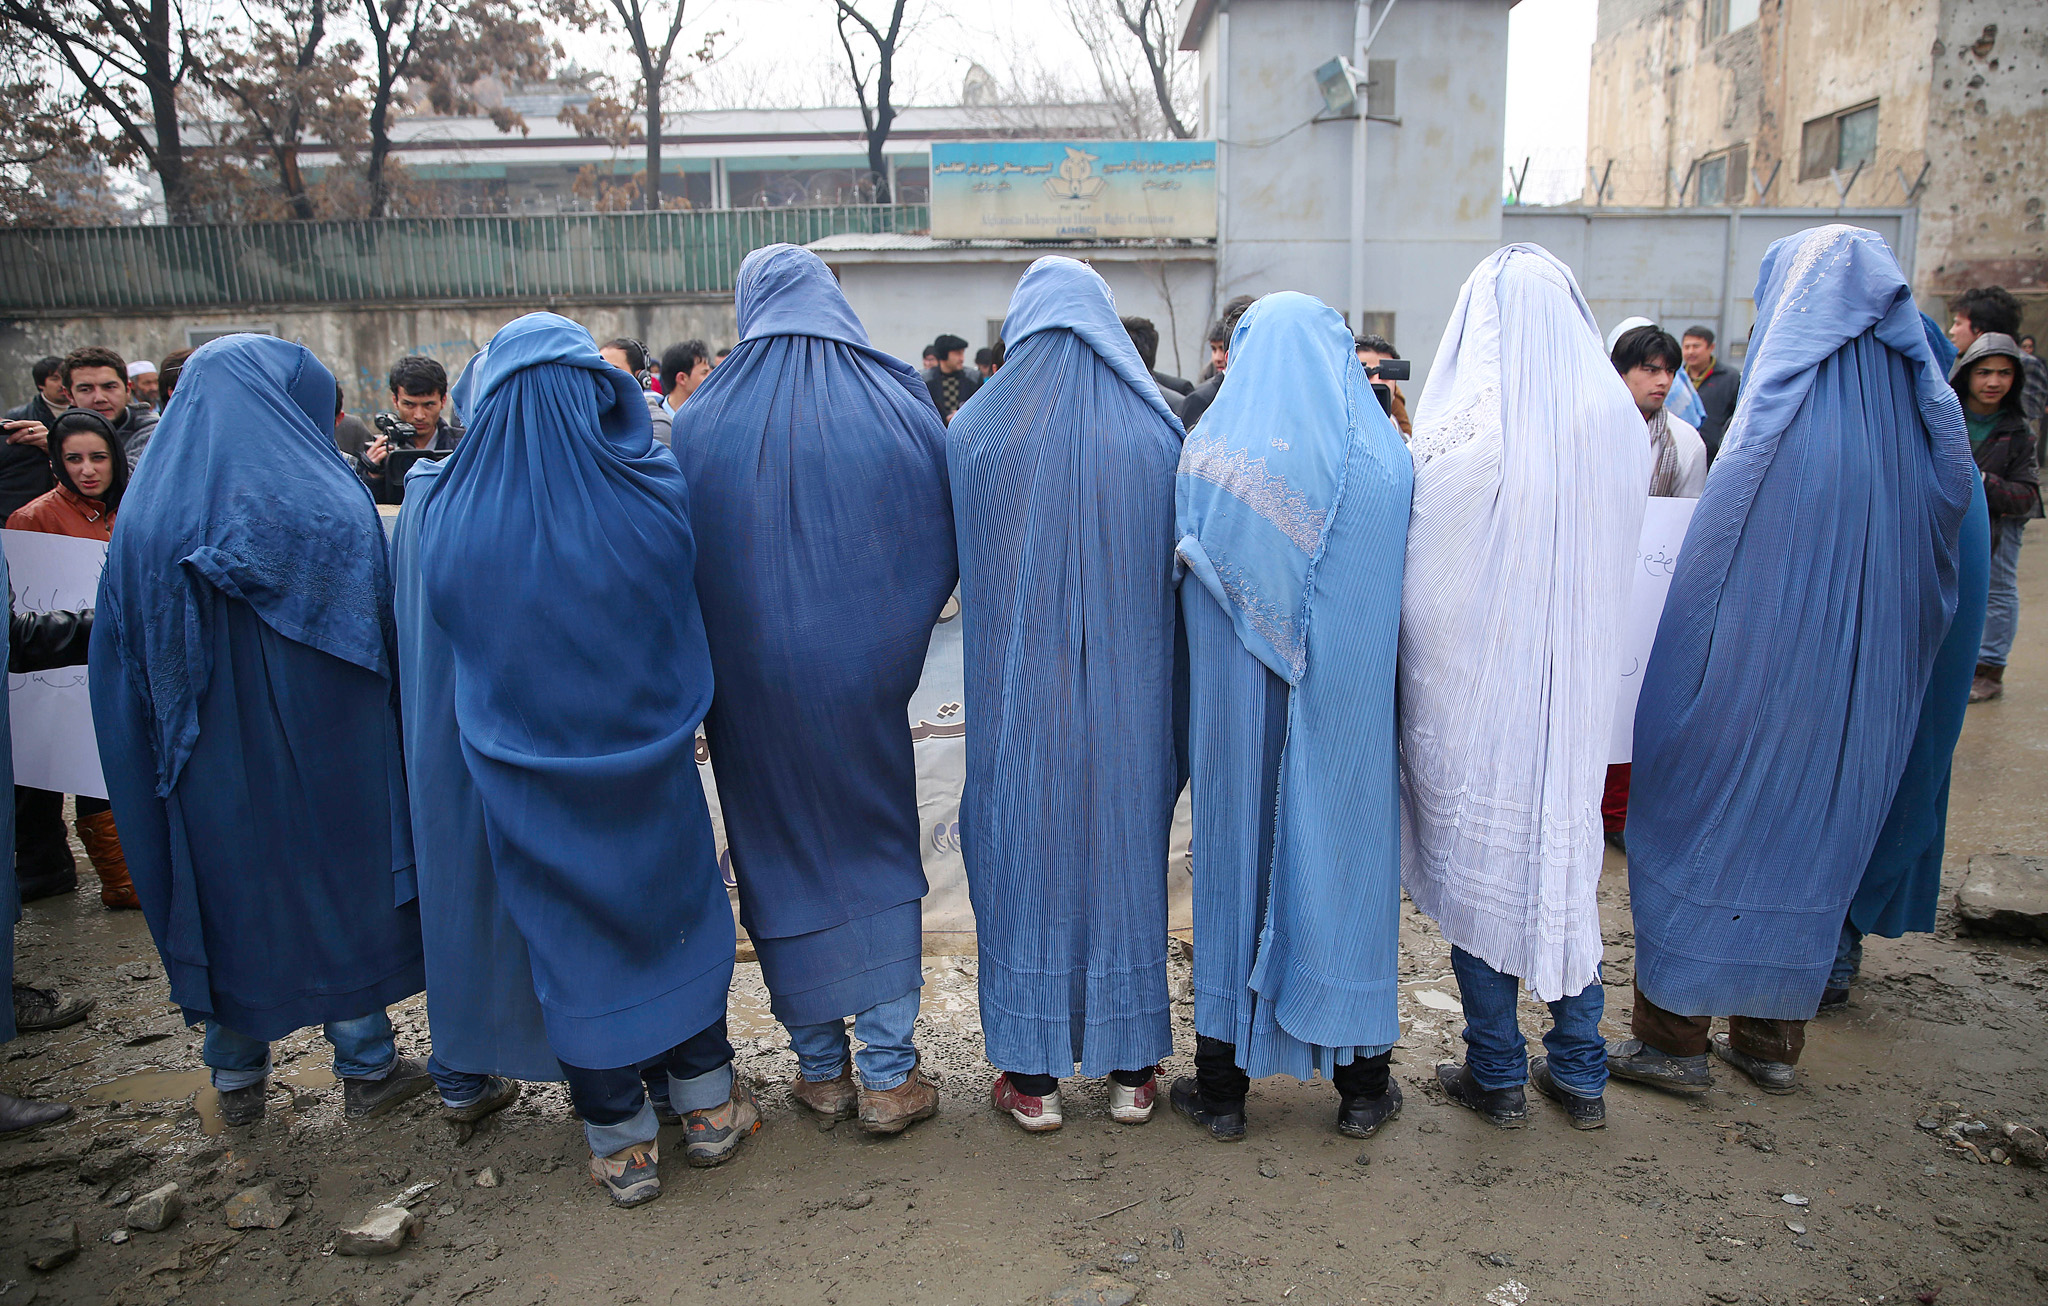 Male civil society members wear burqas to protest violence against women, ahead of International Women's Day, in Kabul, Afghanistan, Thursday, March 5, 2015. (AP Photo/Massoud Hossaini)